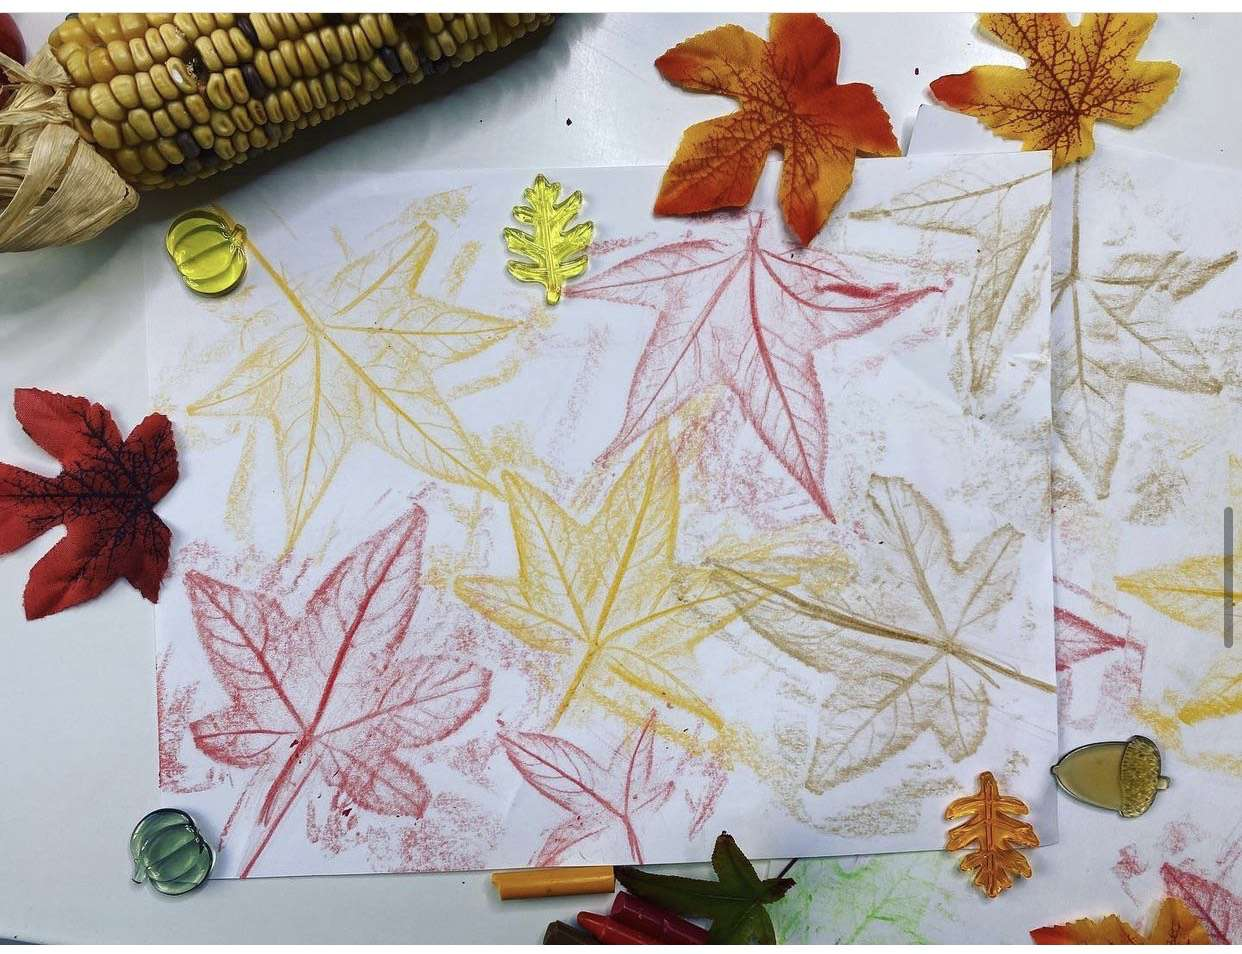 Leaf rubbings in a variety of colors on paper